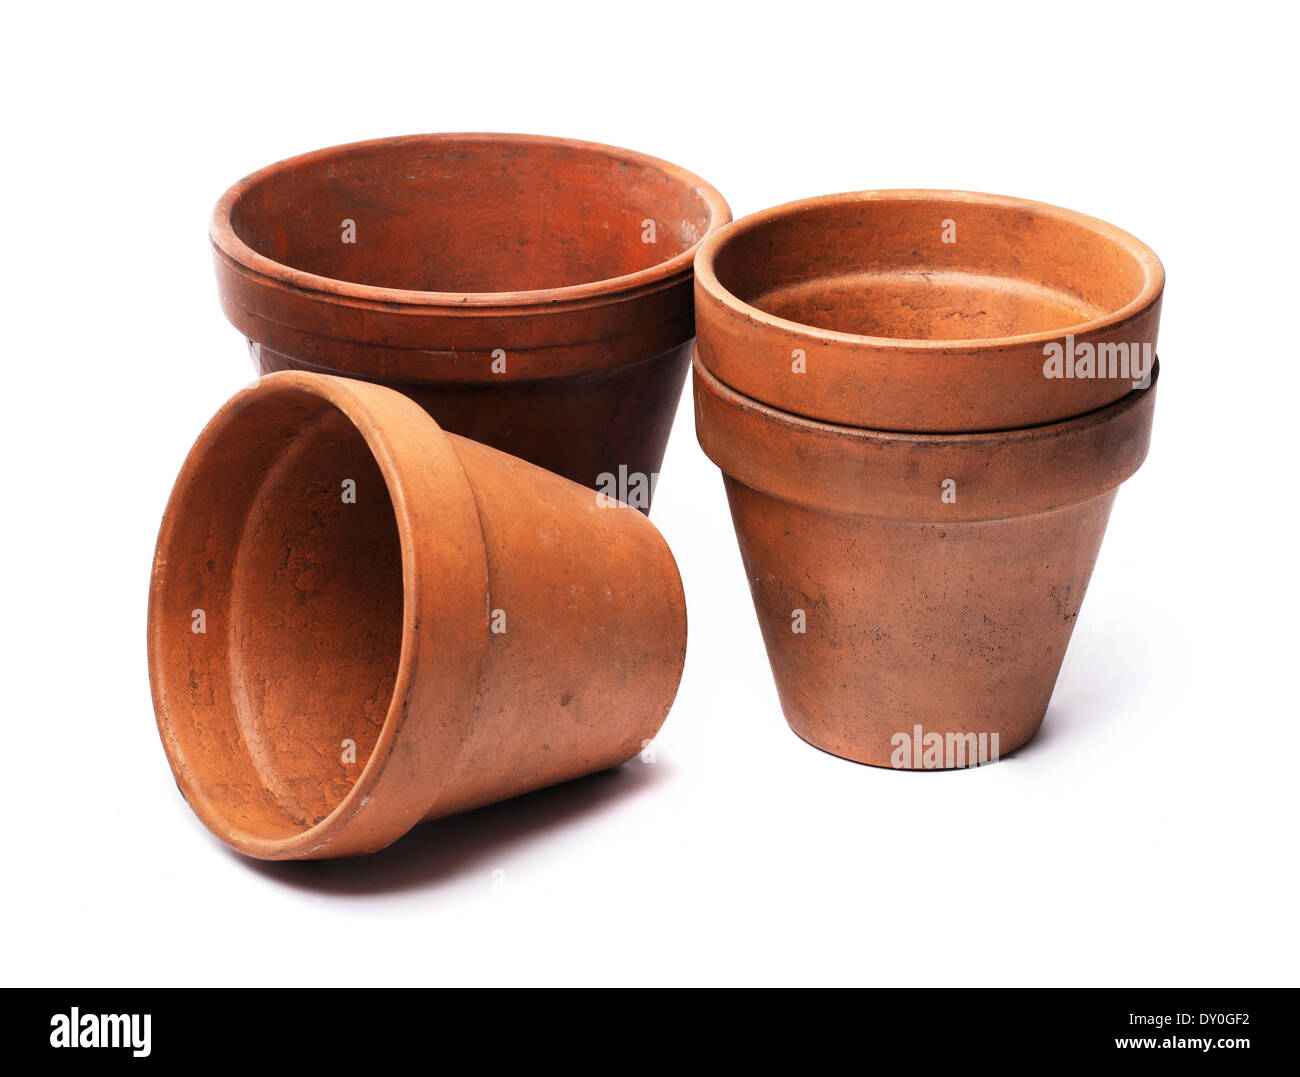 Old used flower pots made of clay, isolated on white with natural shadows. - Stock Image